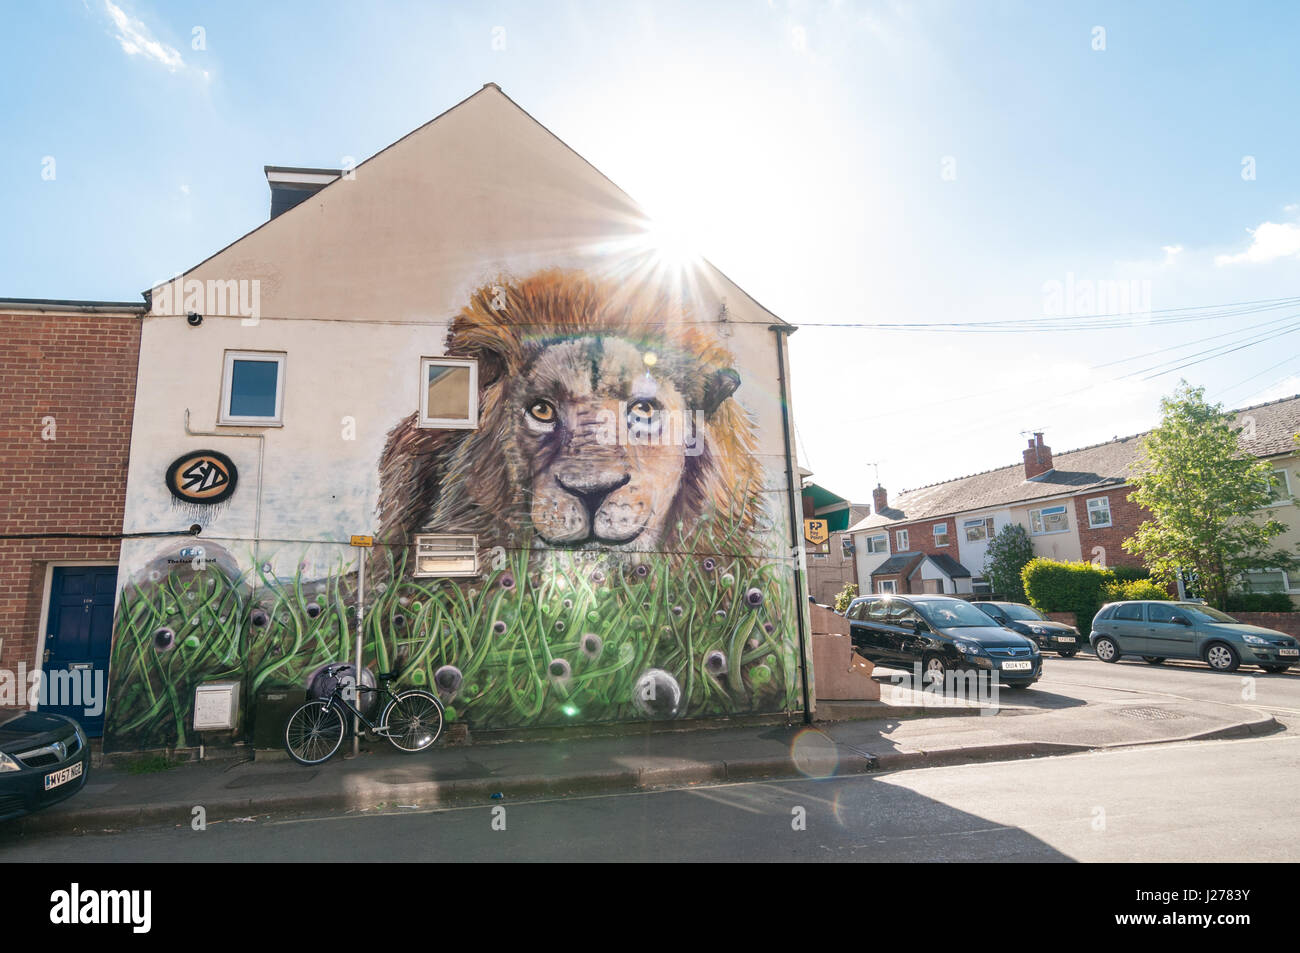 lion-mural-on-wall-in-east-oxford-united-kingdom-J2783Y.jpg